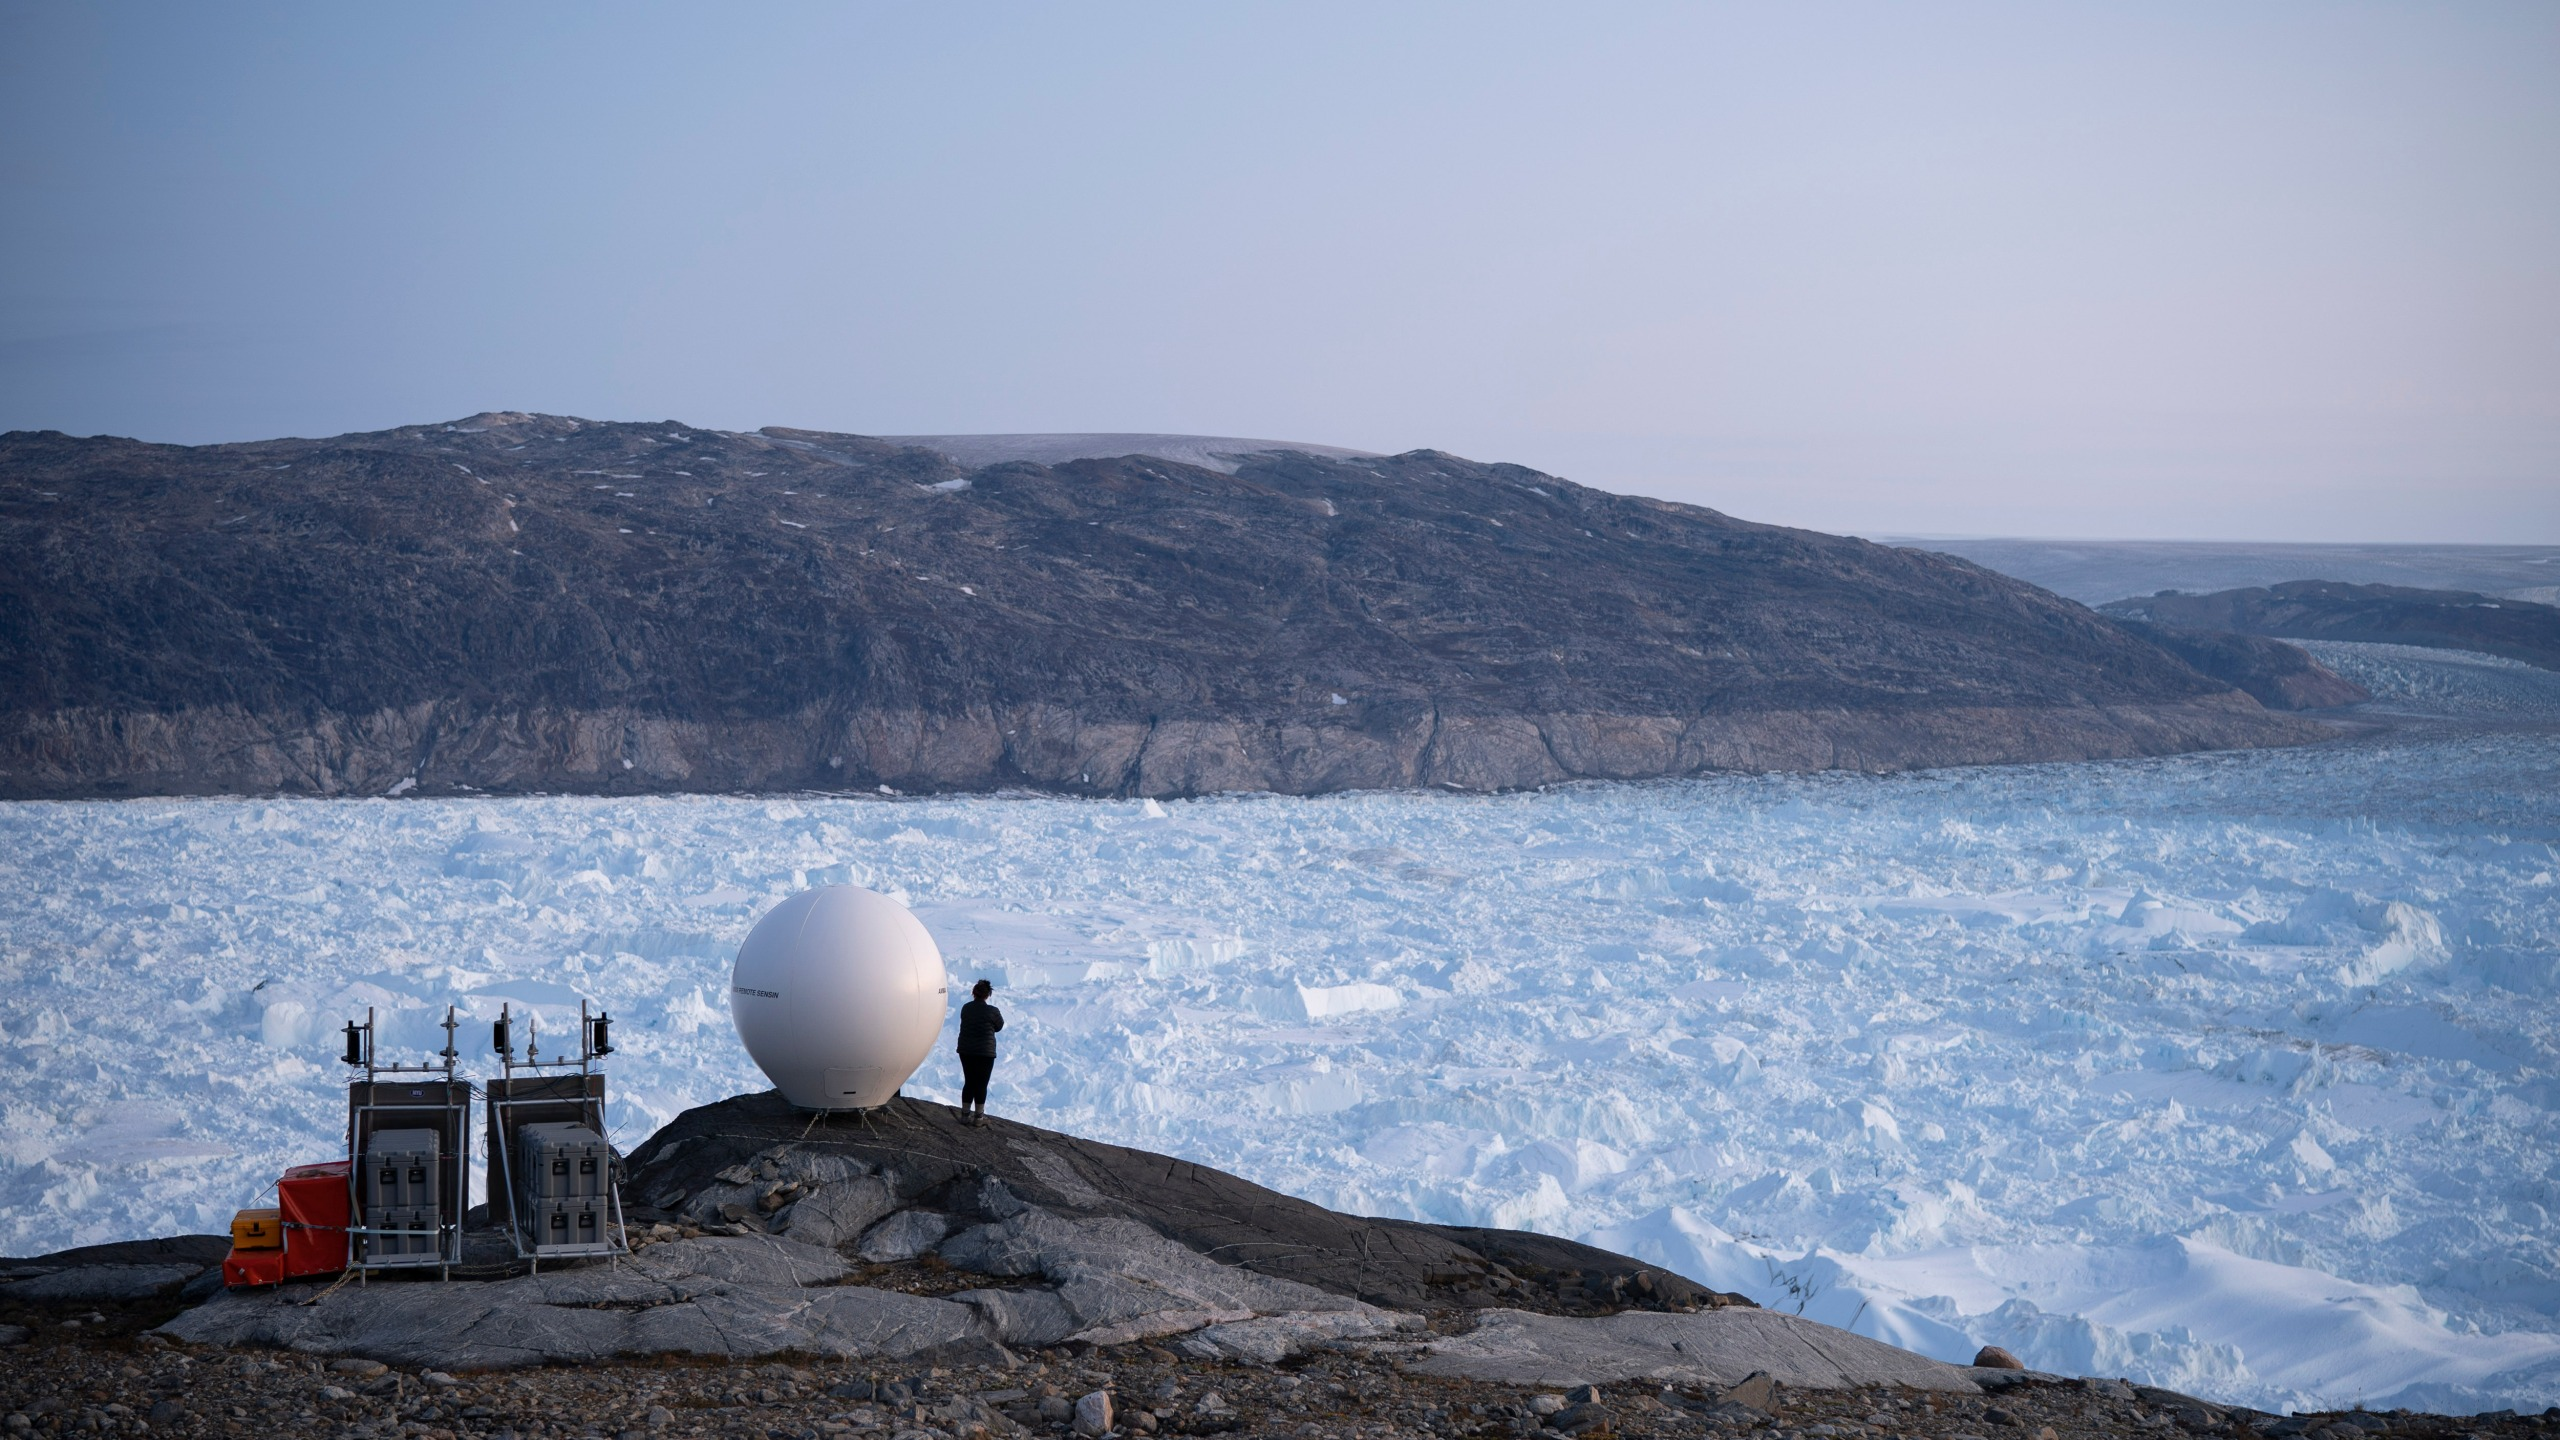 In this Aug. 16, 2019 file photo, a woman stands next to an antenna at an NYU base camp at the Helheim glacier in Greenland. According to a study released on Thursday, Aug. 20, 2020, Greenland lost a record amount of ice during an extra warm 2019, with the melt massive enough to cover California in more than four feet (1.25 meters) of water. (AP Photo/Felipe Dana)